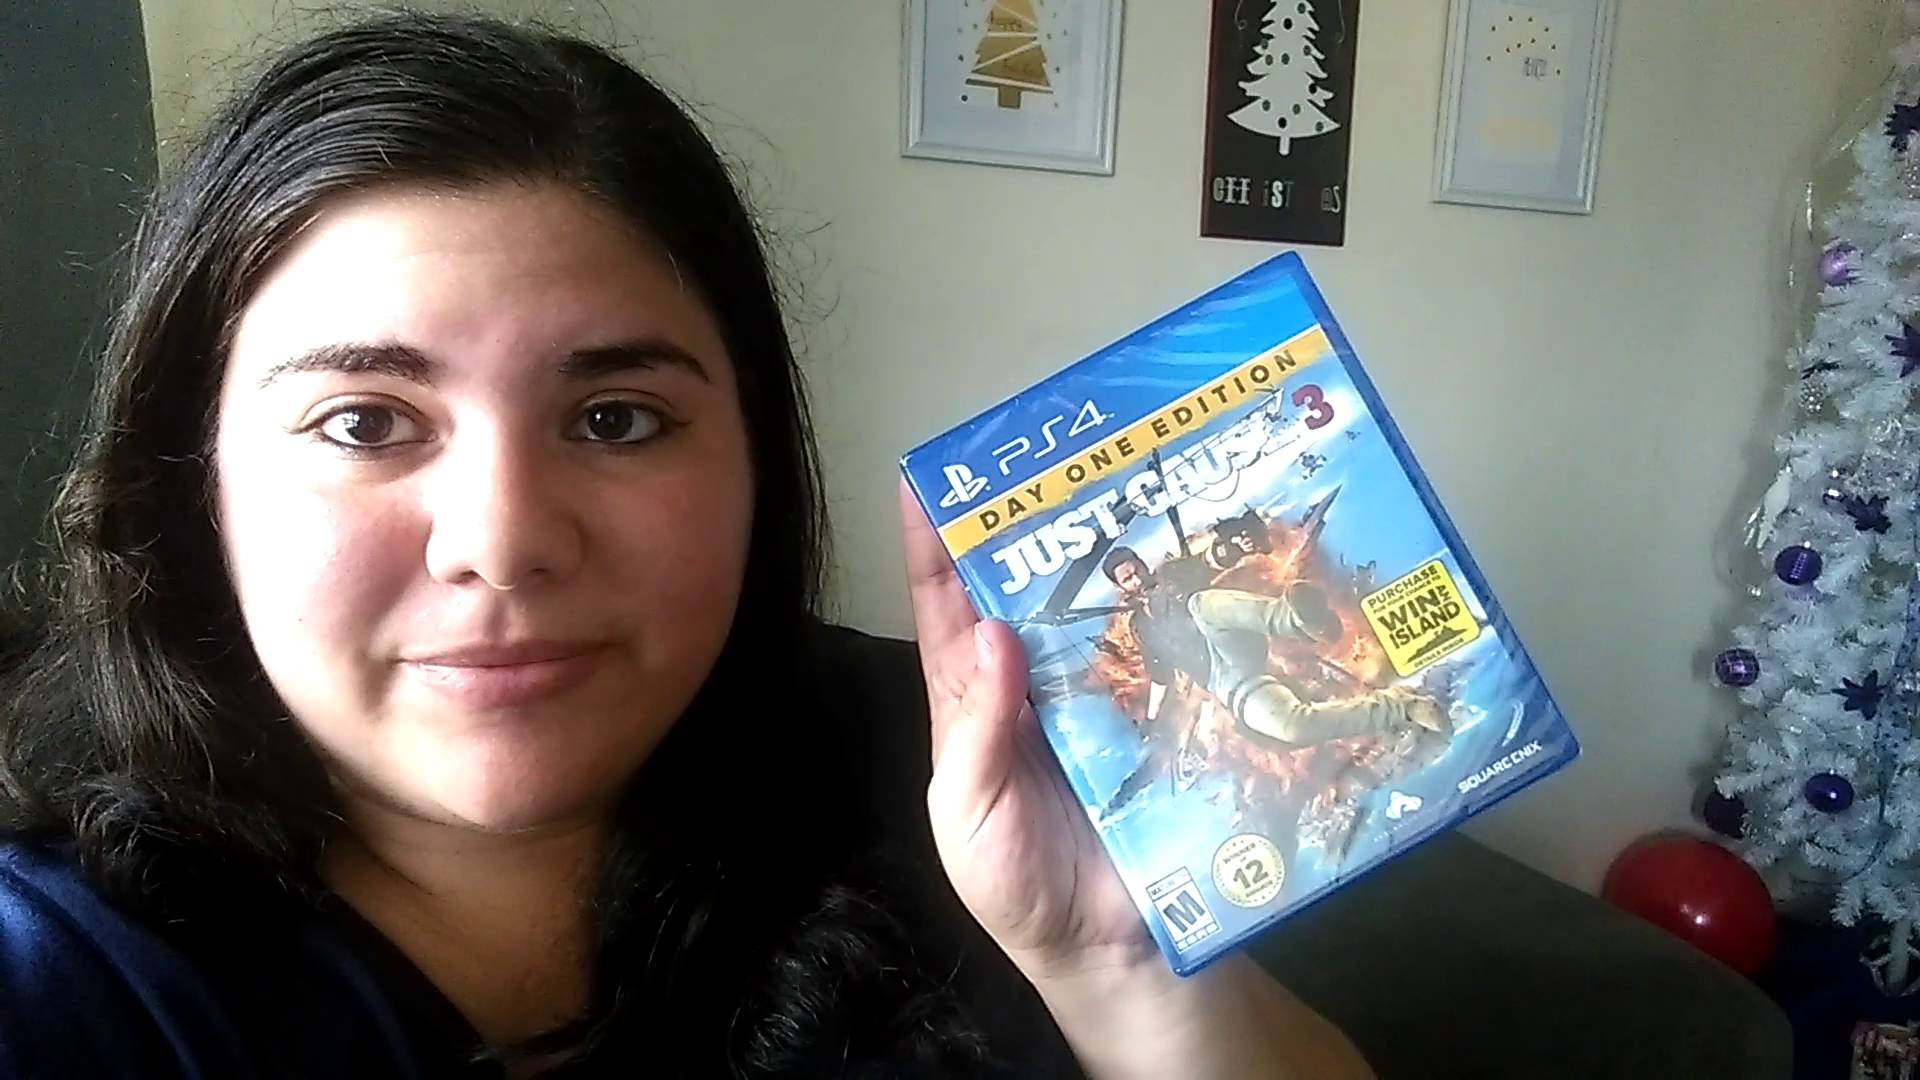 Extra Life 30 Day Video Challenge – Day 1